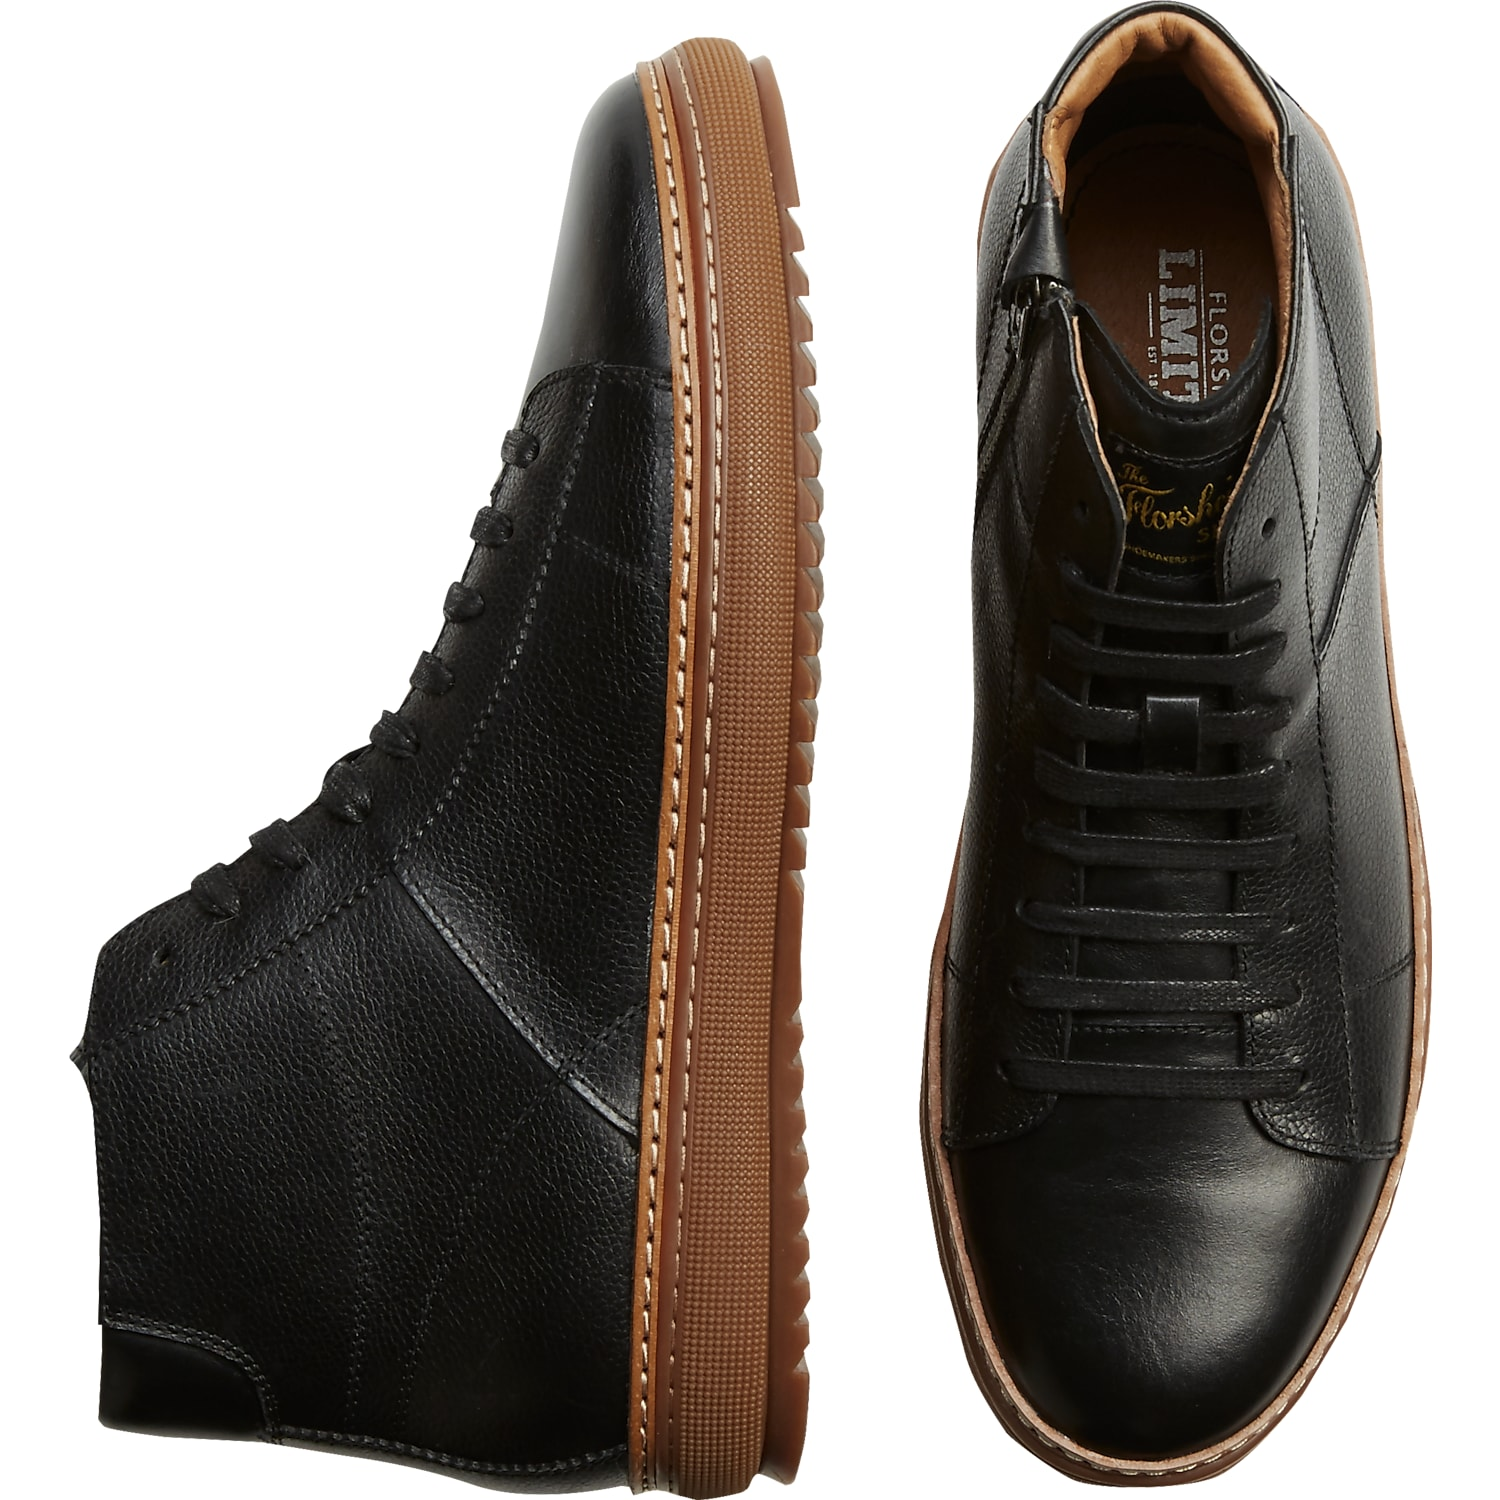 Mens Florsheim Shoes, Shoes - Florsheim Crew Hi Black Sneakers - Men's  Wearhouse